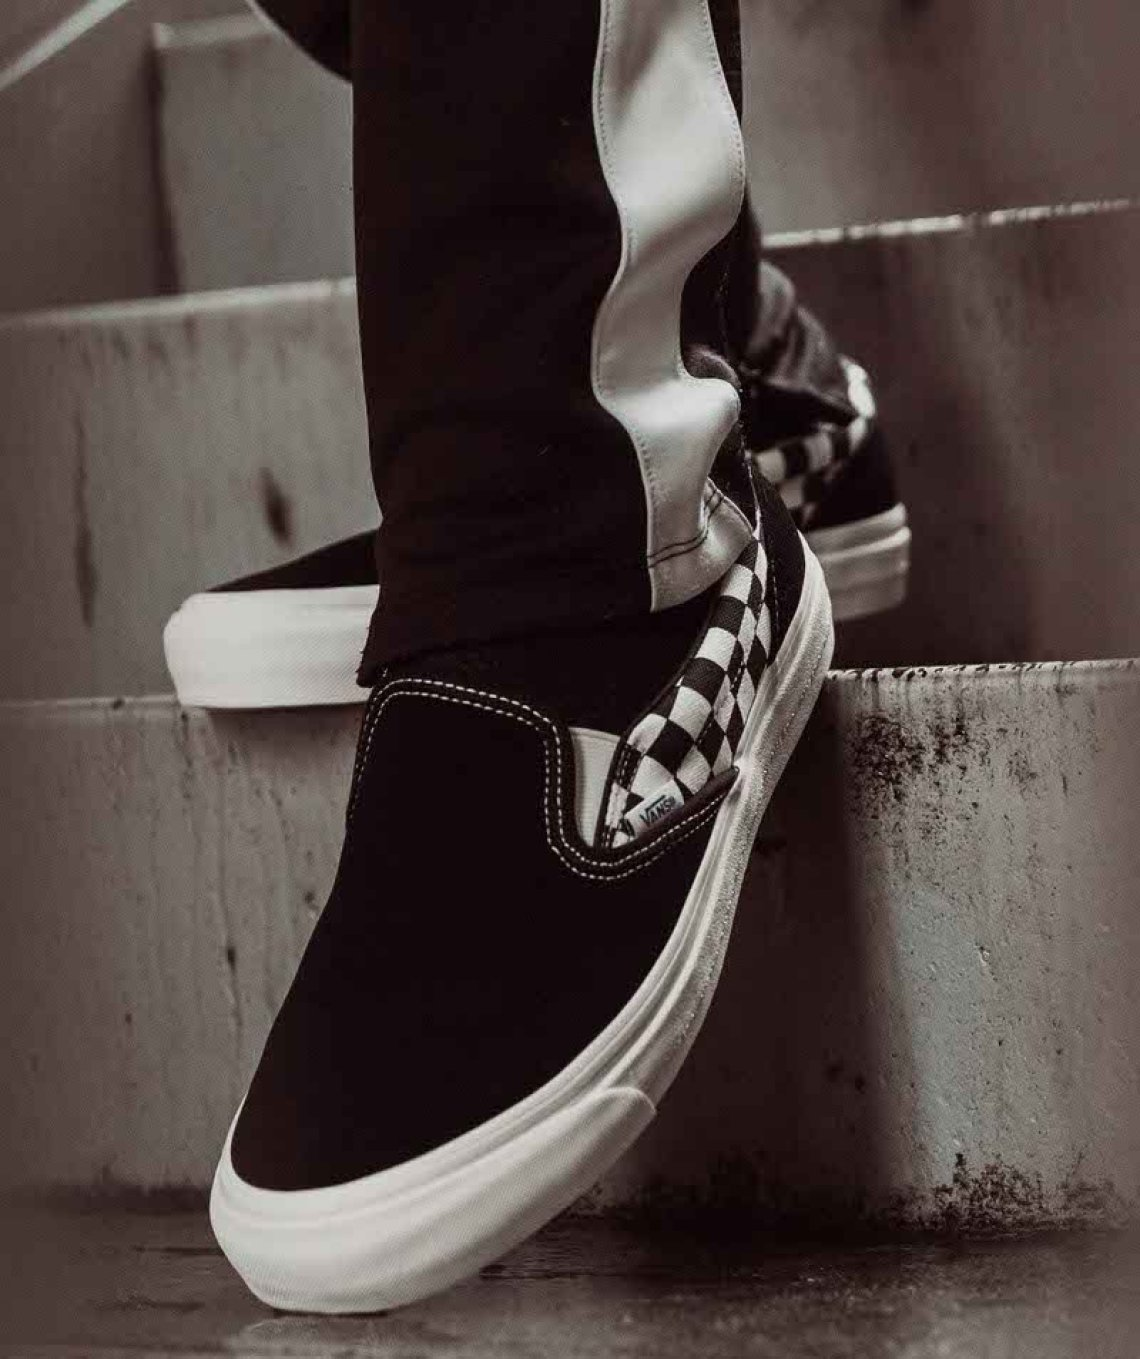 5f413fac82 Check out the images below for an on-foot look at the Modernica x Vans OG Classic  Slip-On LX.